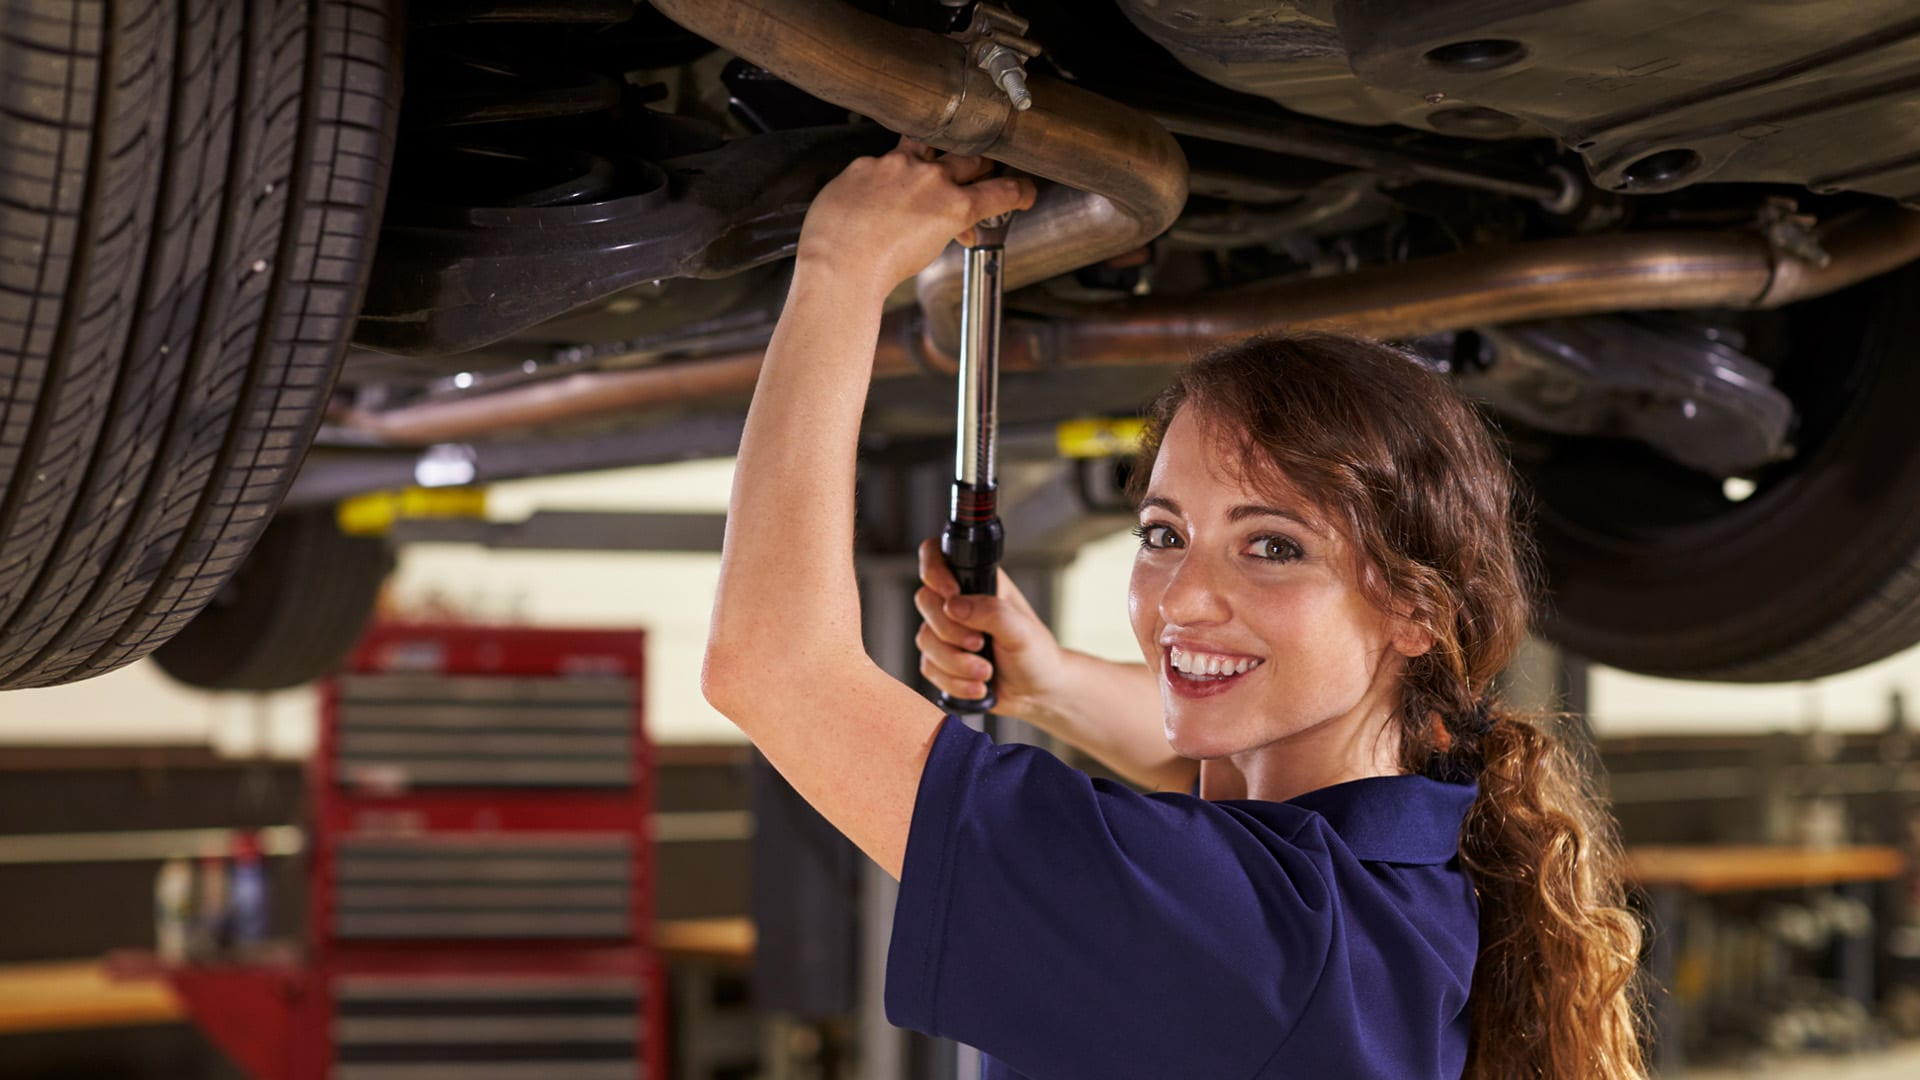 How to Become an Automotive Mechanic | Career Girls - Explore Careers